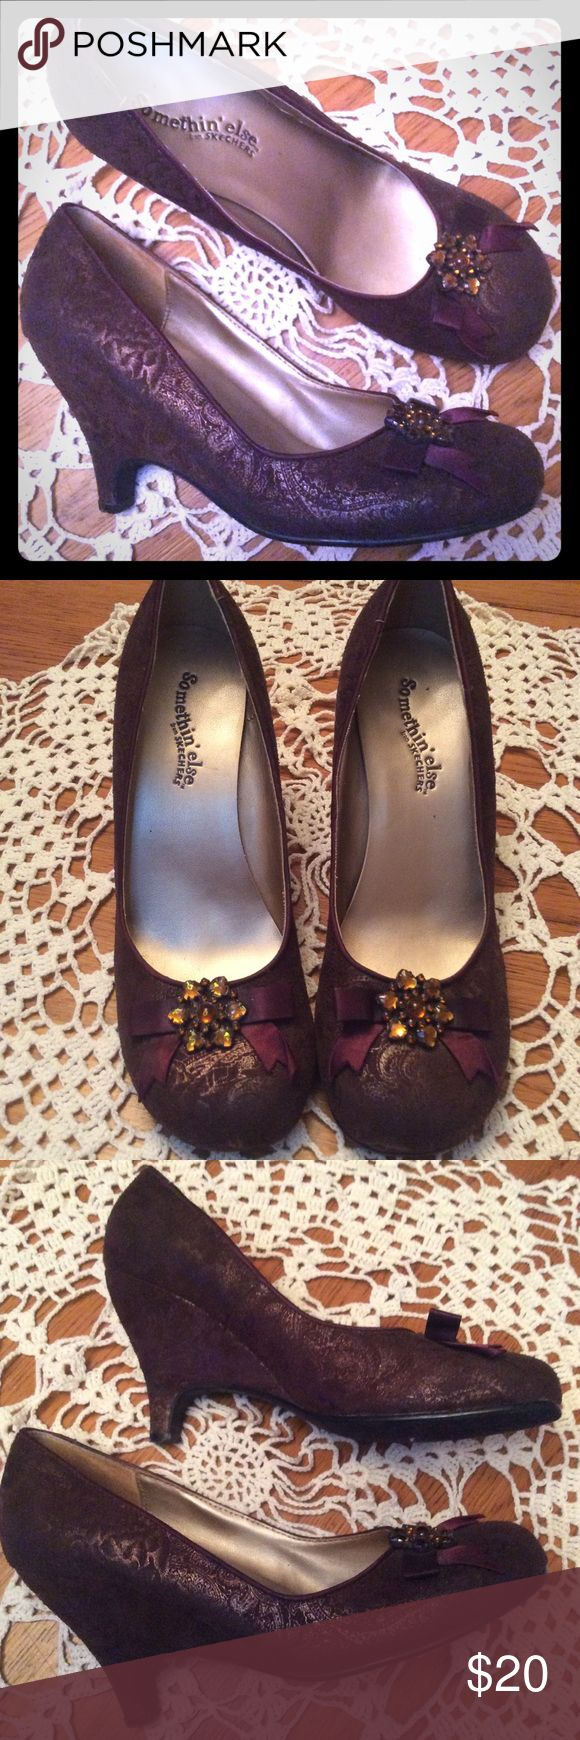 ⚜️Vintage Style Printed Suede Heels⚜️ These beautiful heels are classic vintage Style with pretty burgundy bows on the front with amber rhinestone embellishments. The fabric on the show is a burgundy brown with a golden paisley floral print imprinted on them. Pet/smoke free. Skechers Shoes Heels